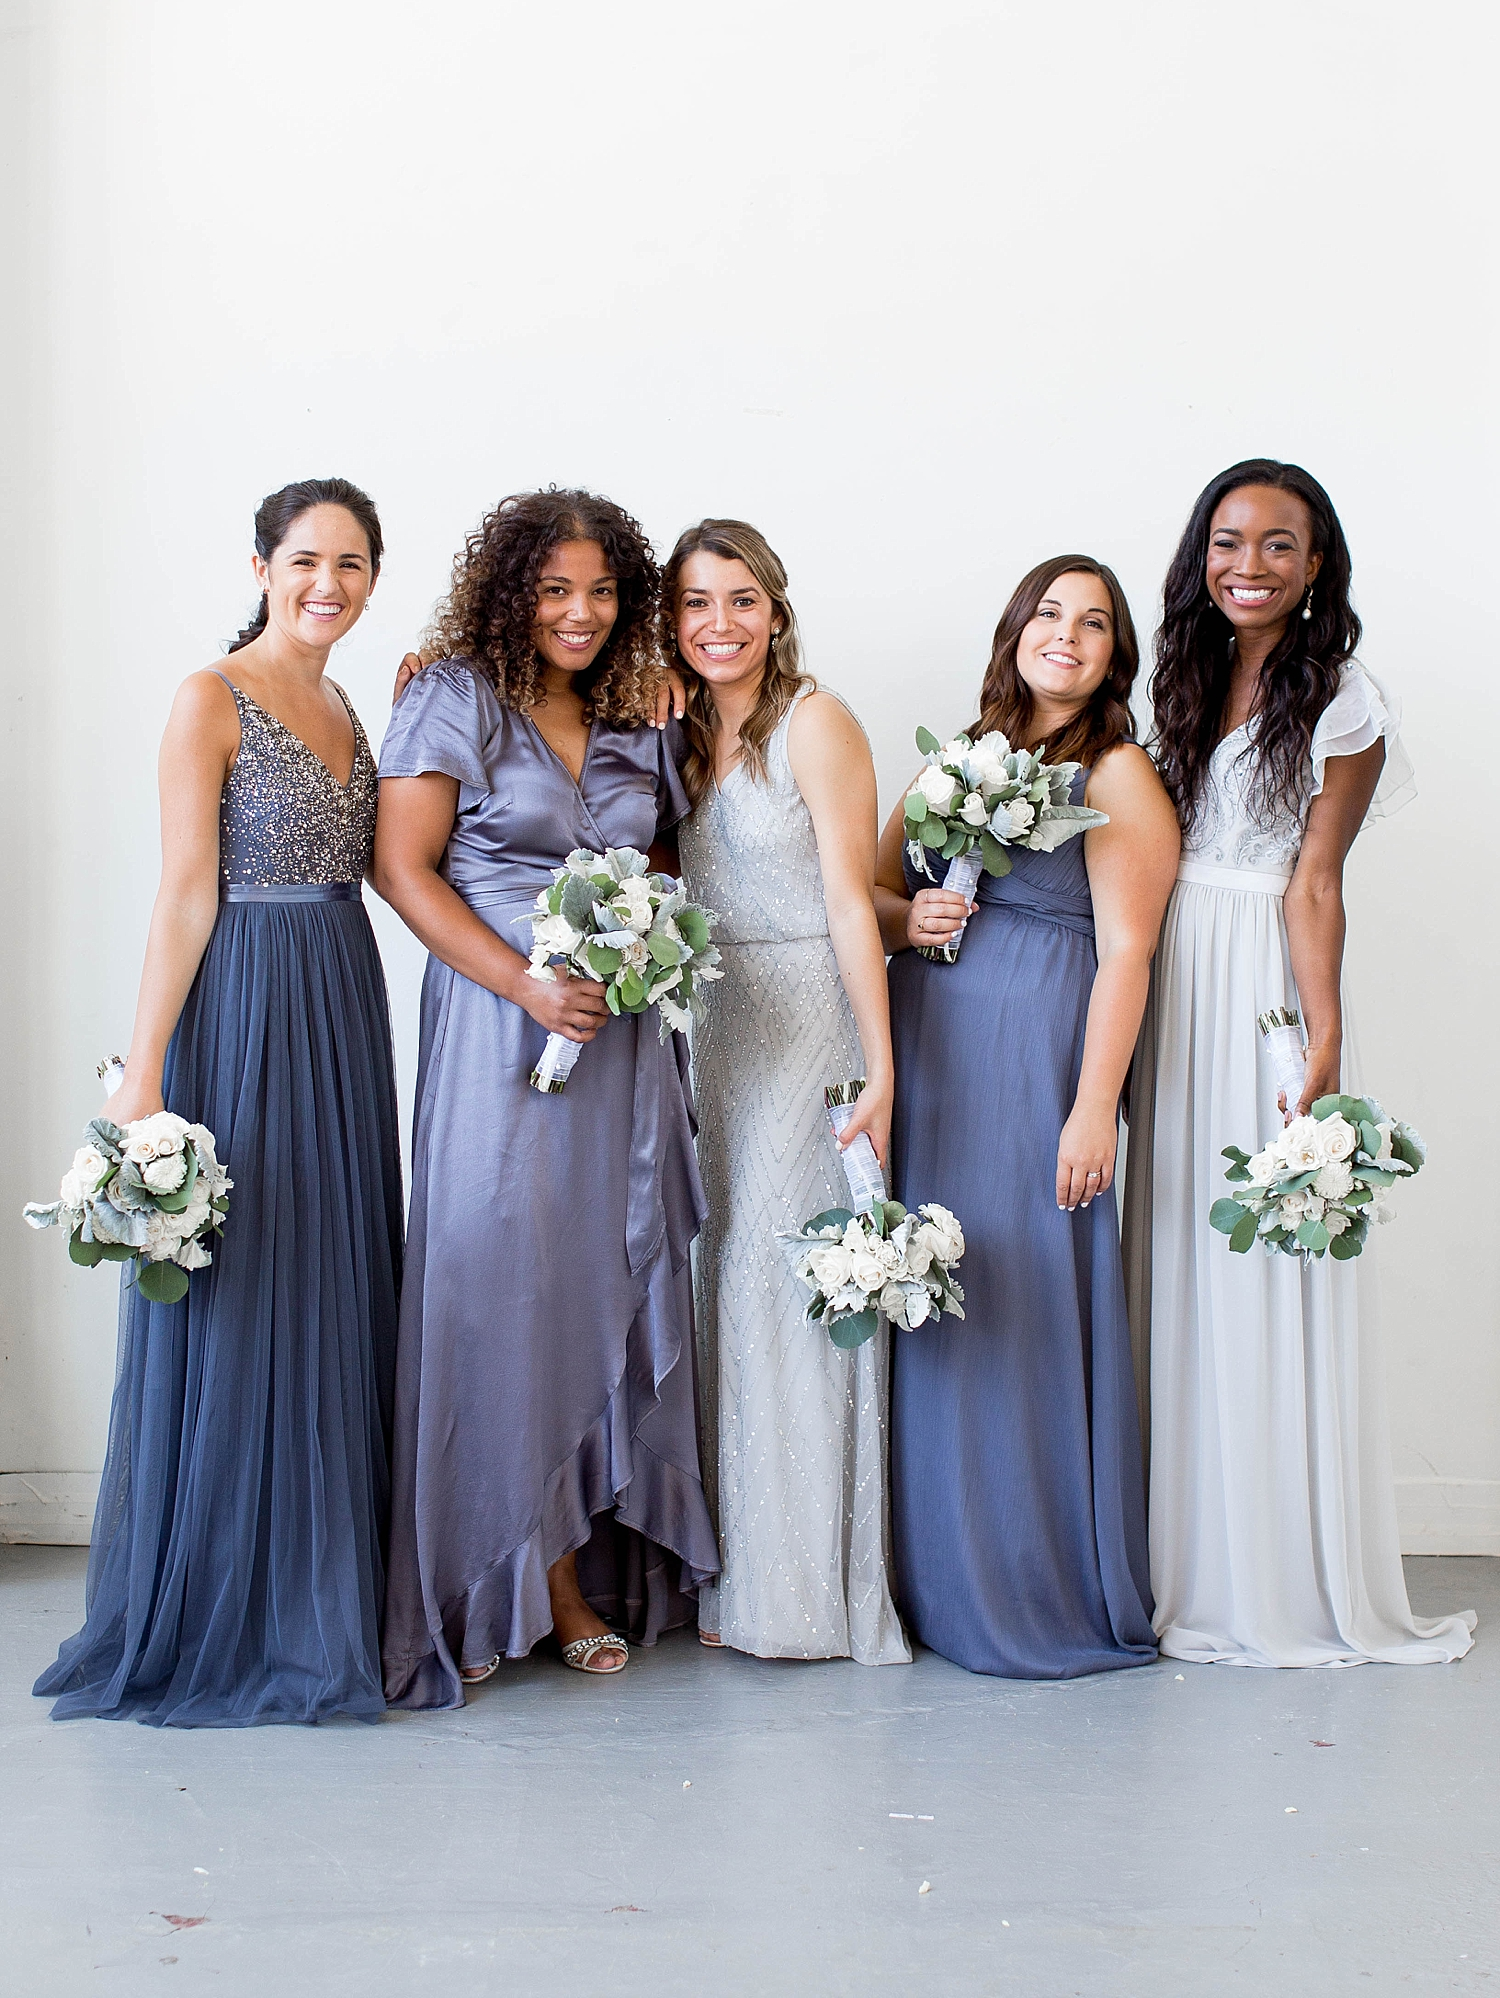 BHLDN Bridesmaids Dresses Campaign Philadelphia New Jersey Wedding Fashion Photography by Kelee Bovelle_0027.jpg